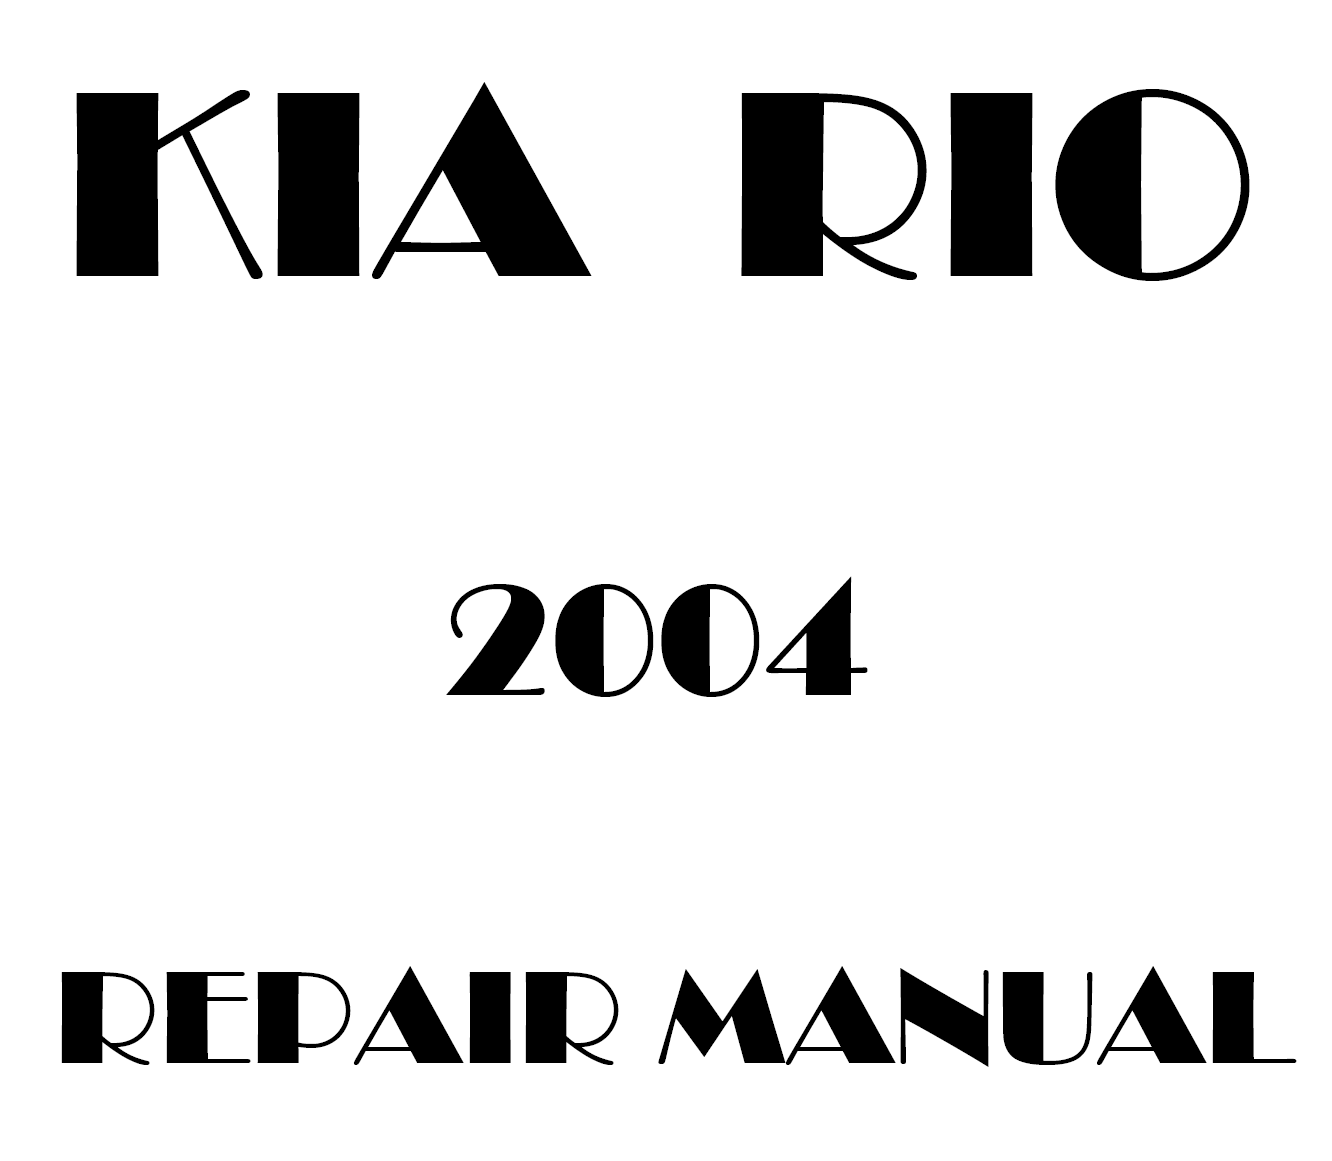 2004 Kia Rio repair manual